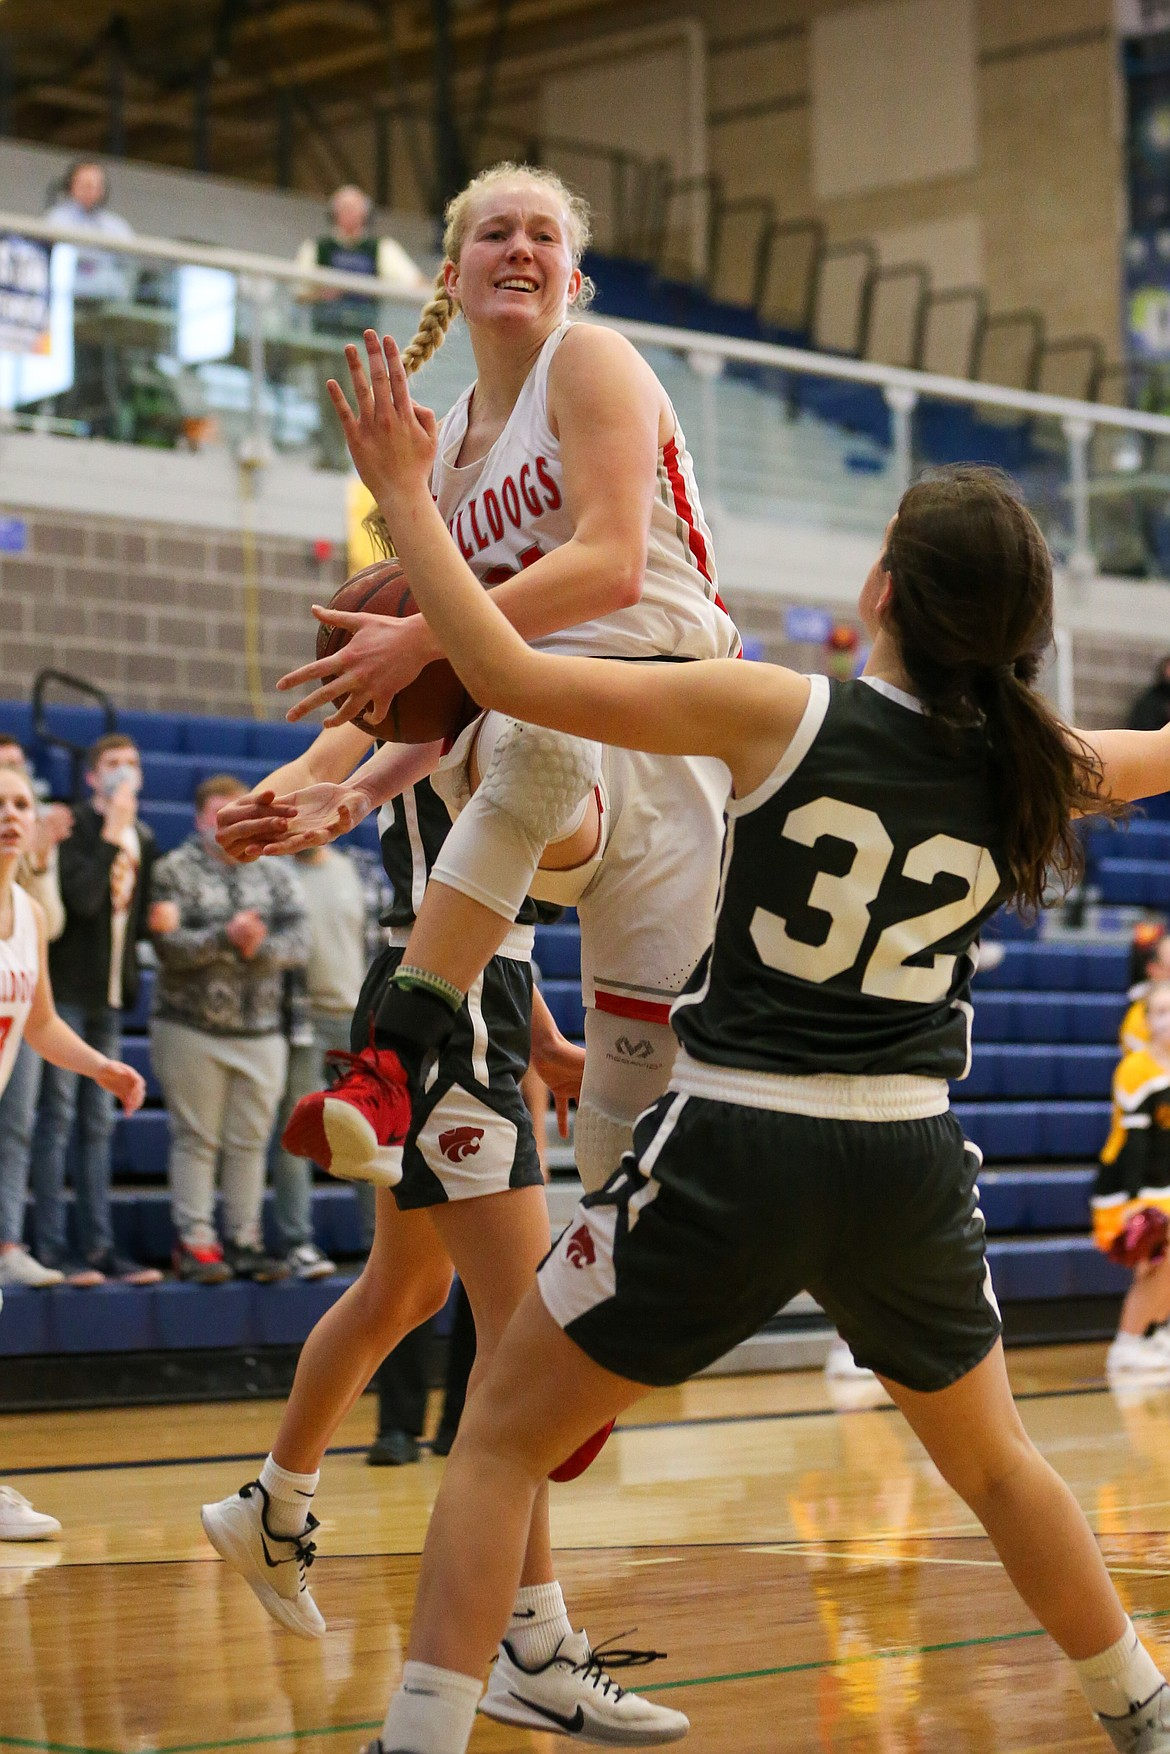 Hattie Larson goes airborne while attacking the basket on Thursday.